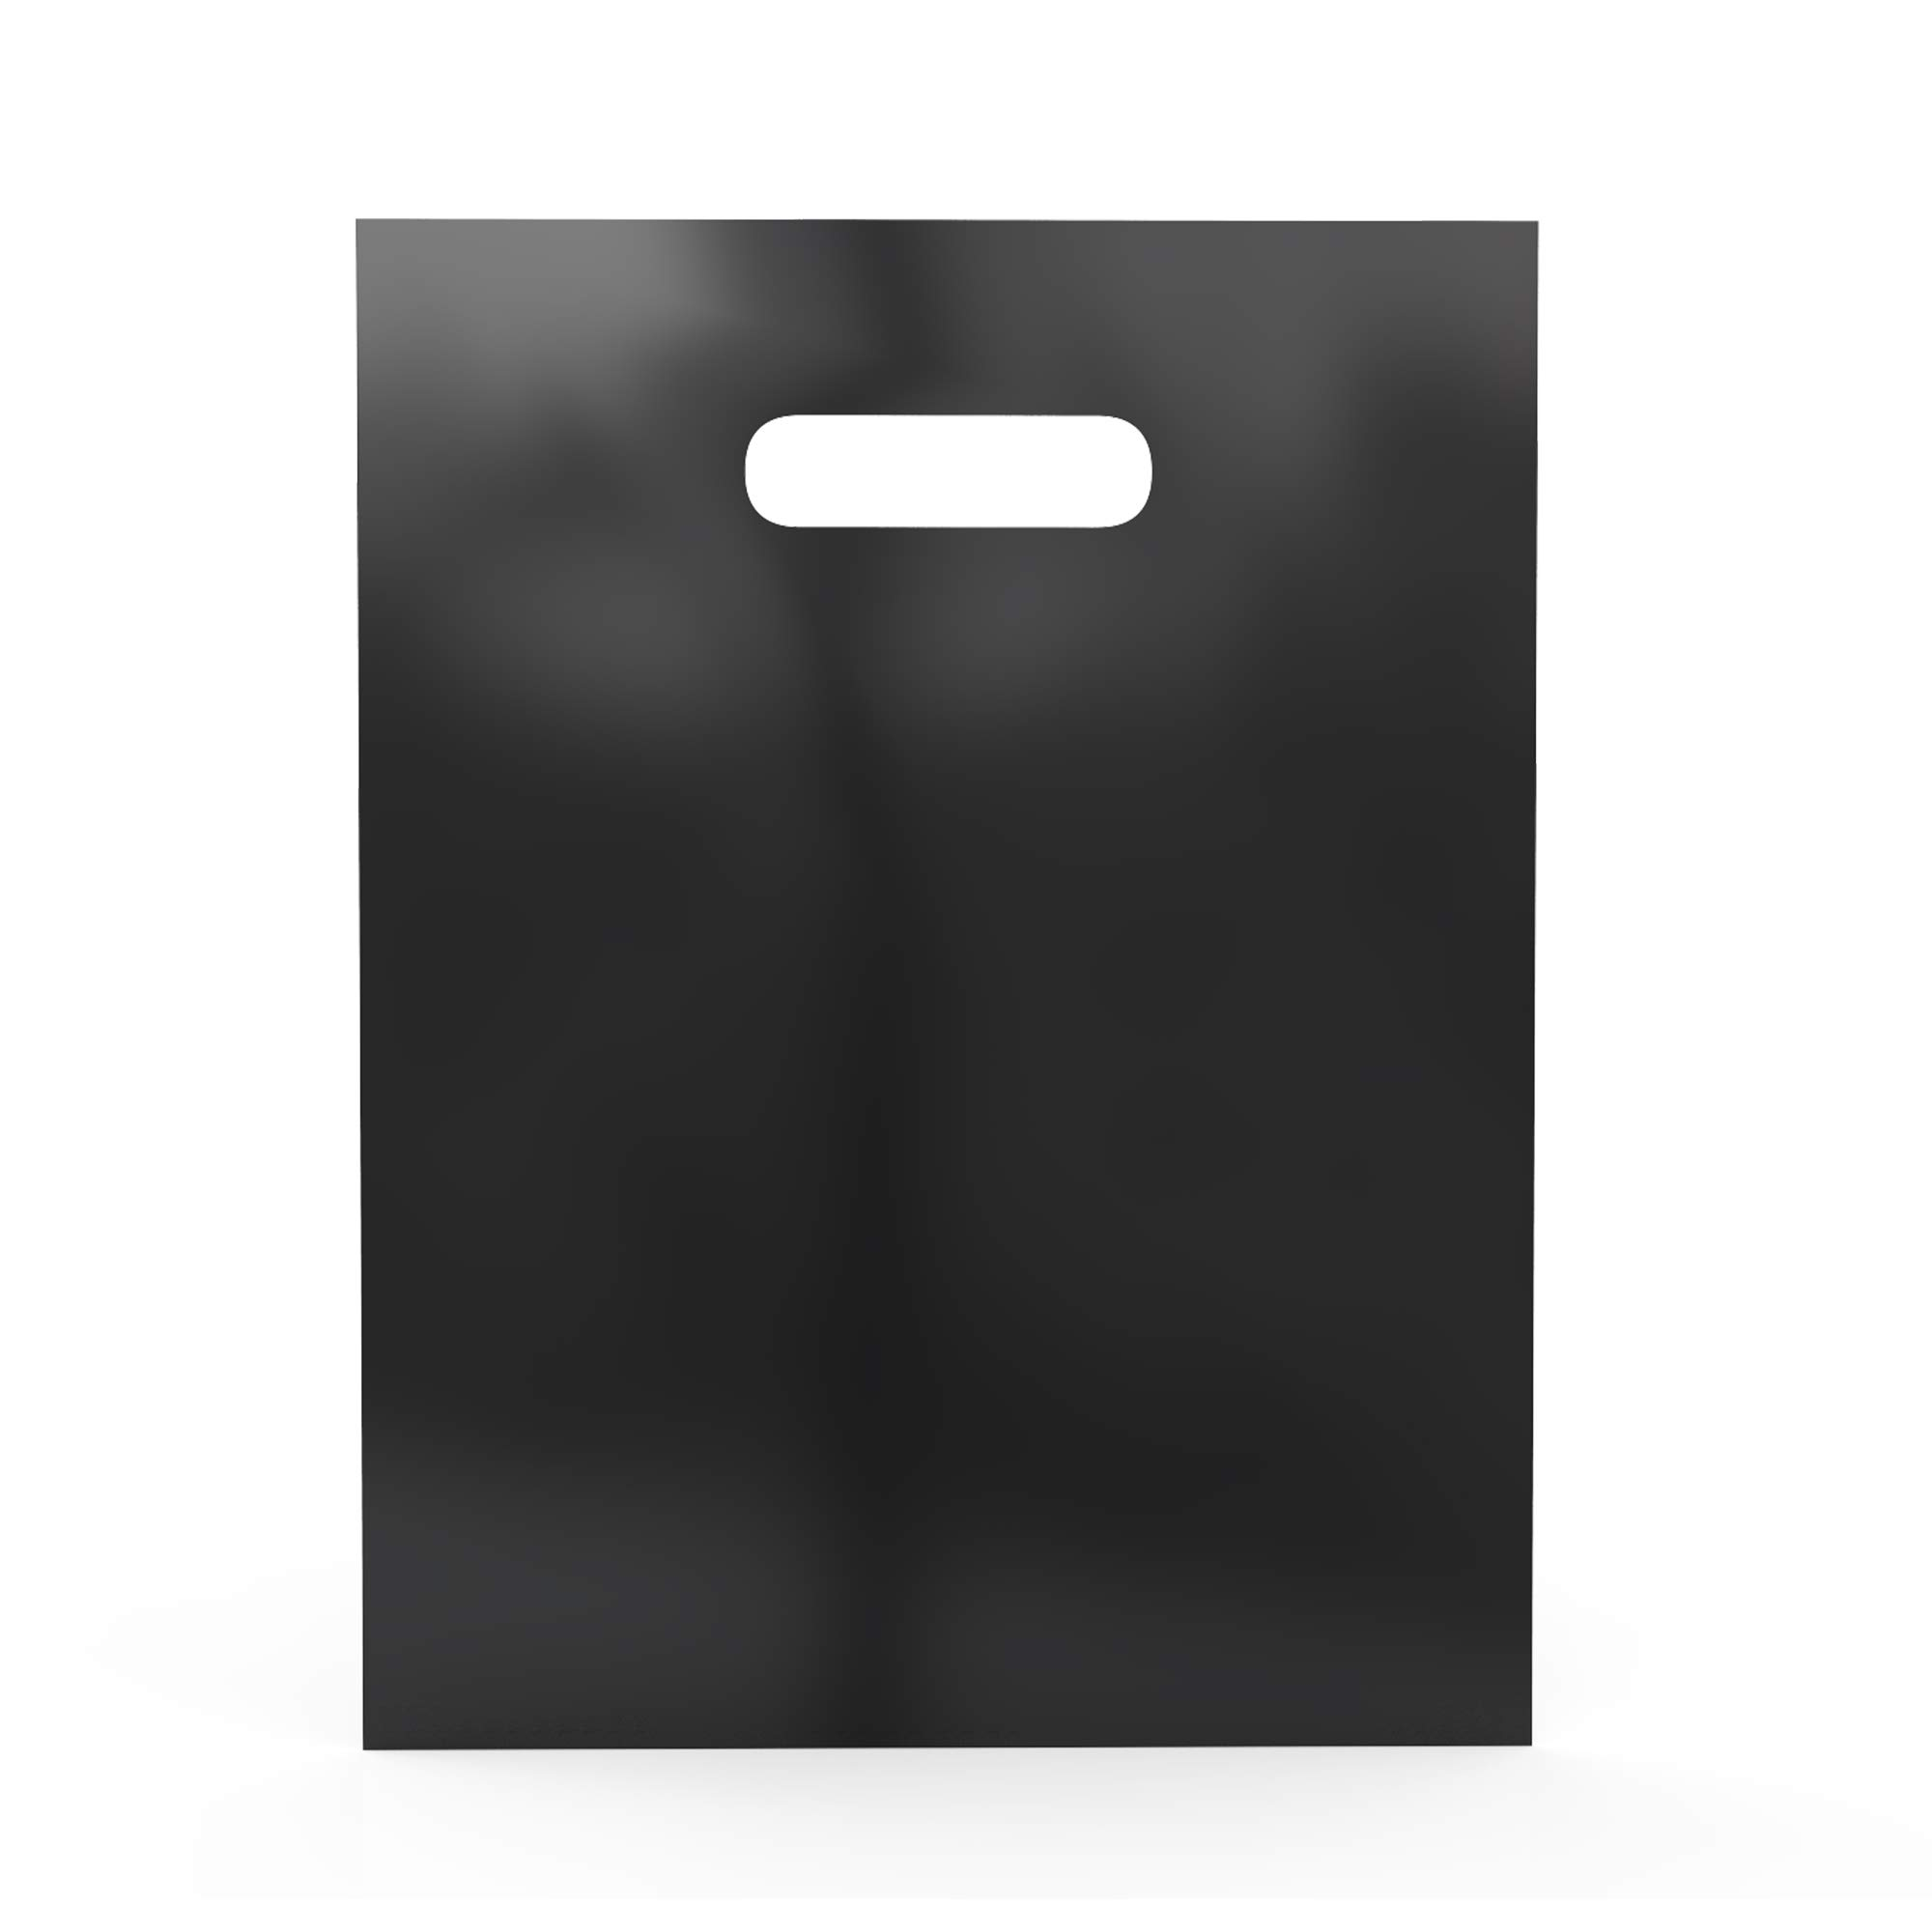 500 Pack 9 x 12 Inch with 1.25 mil Thick Black Merchandise Plastic Glossy Retail Bags   Die Cut Handles   Perfect for Shopping, Party Favors, Birthdays   Color Black   100% Recyclable